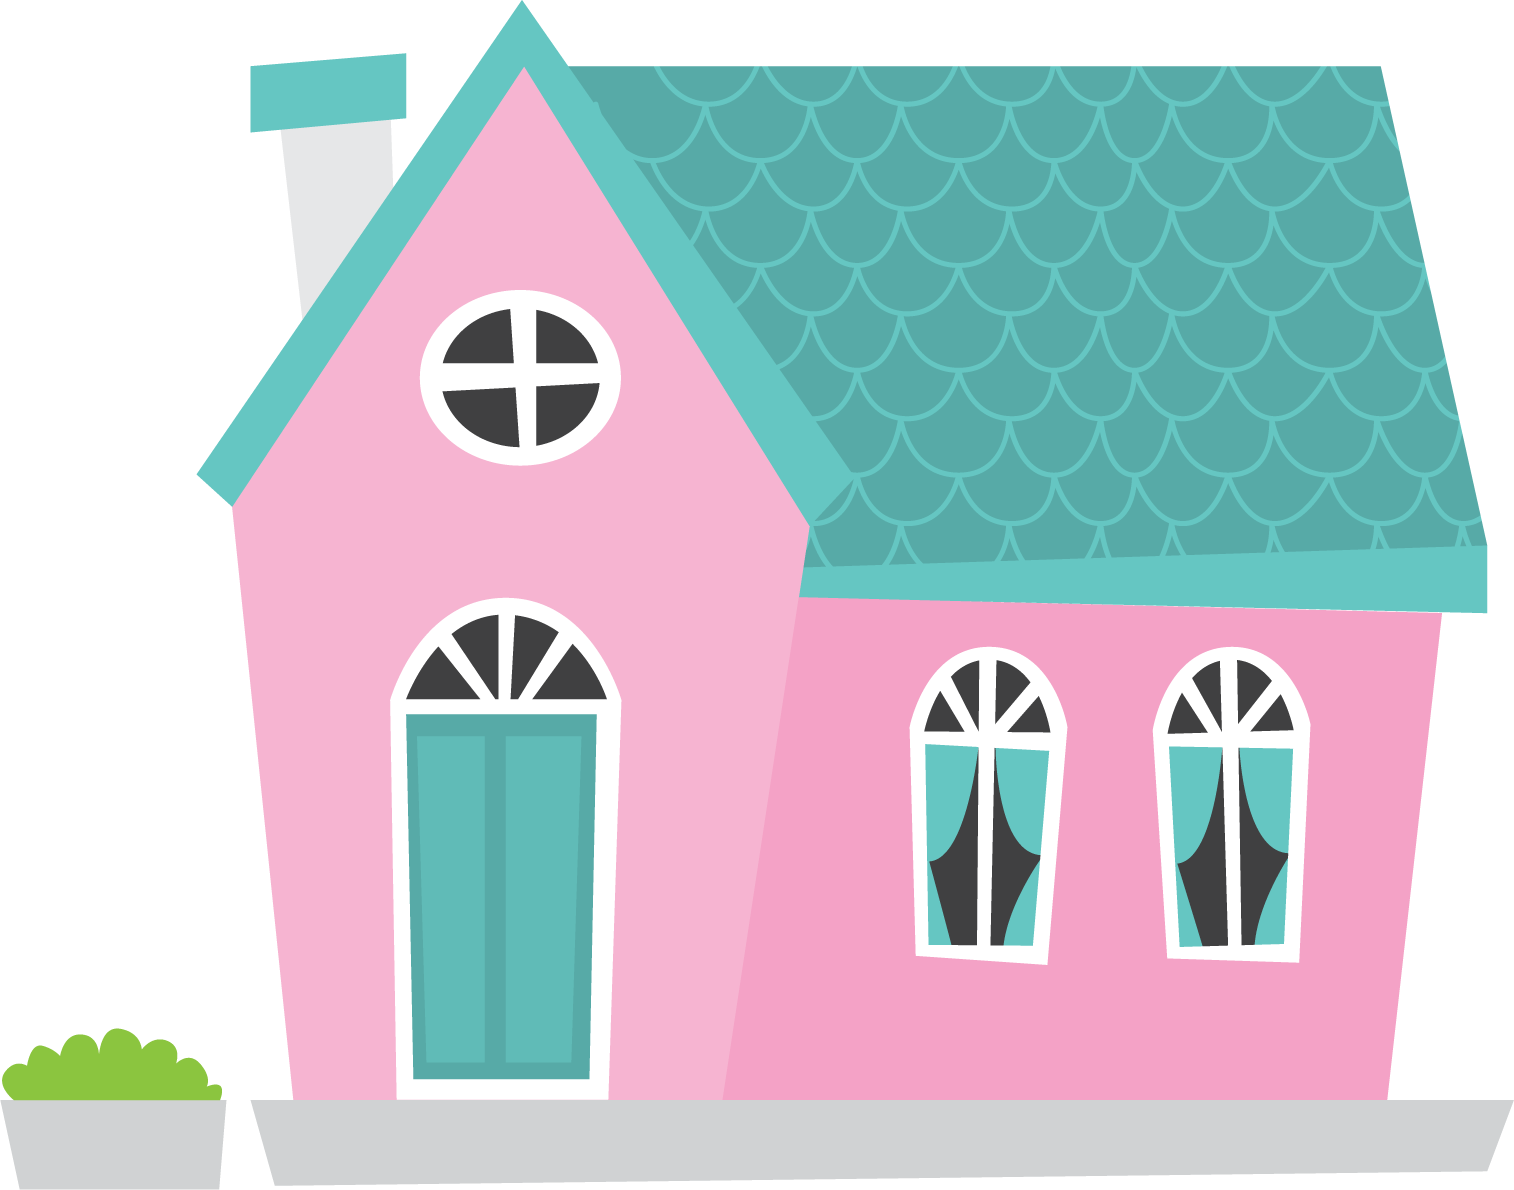 Home clipart pink. Png transparent free images